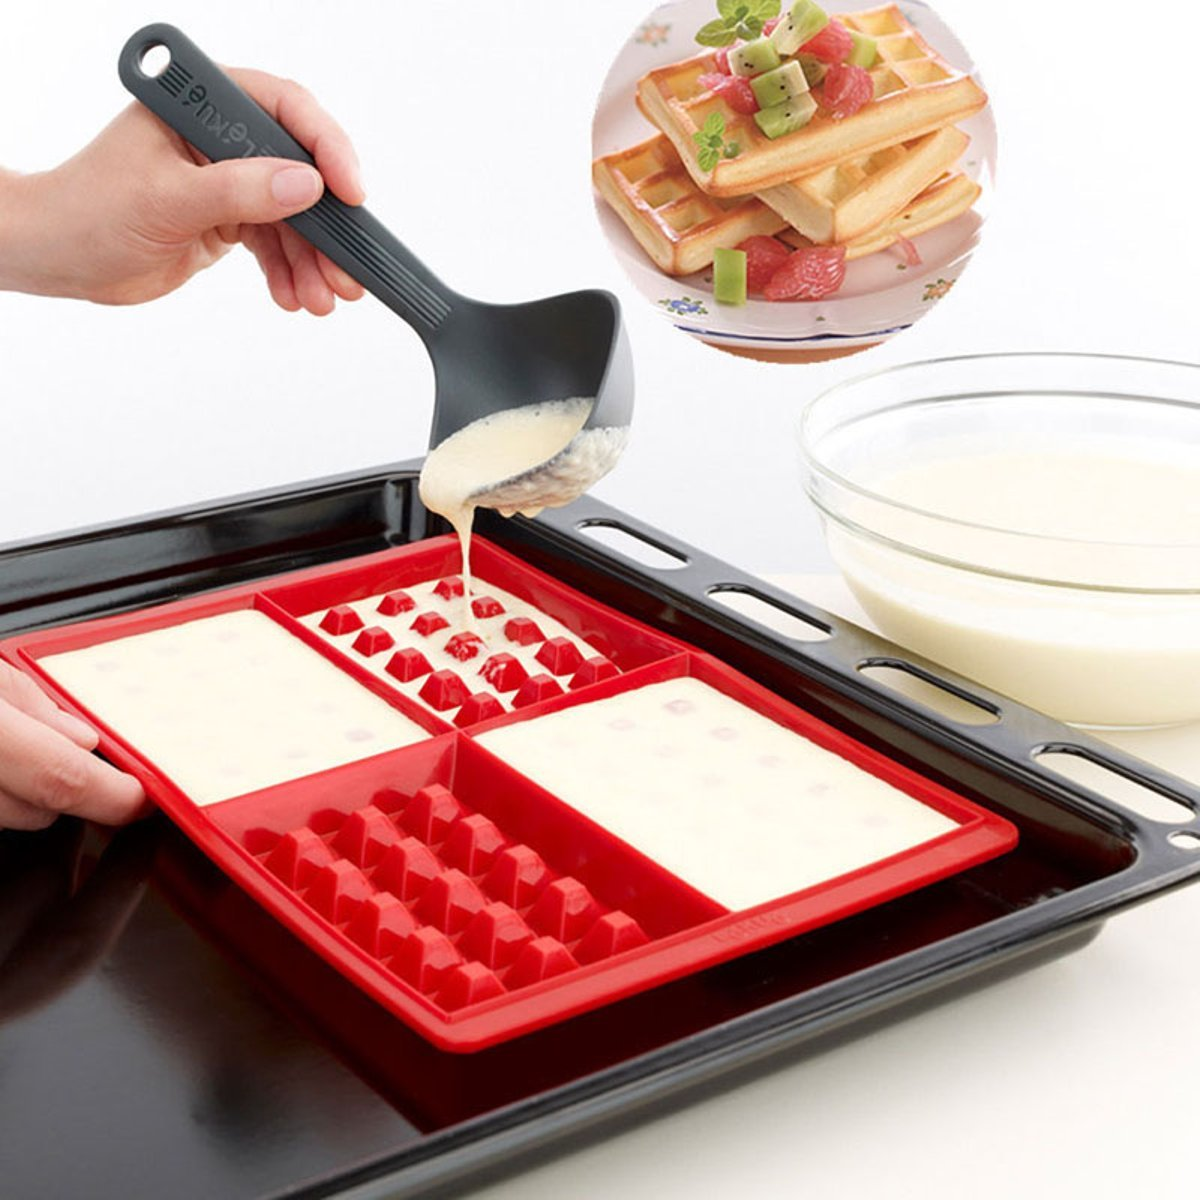 Tacoli- Cake Silicone Moulds- Waffle Makers For Kids Silicone Cake Mould Waffle Mould Silicone Bakeware Set Nonstick Silicone Baking Mold Set